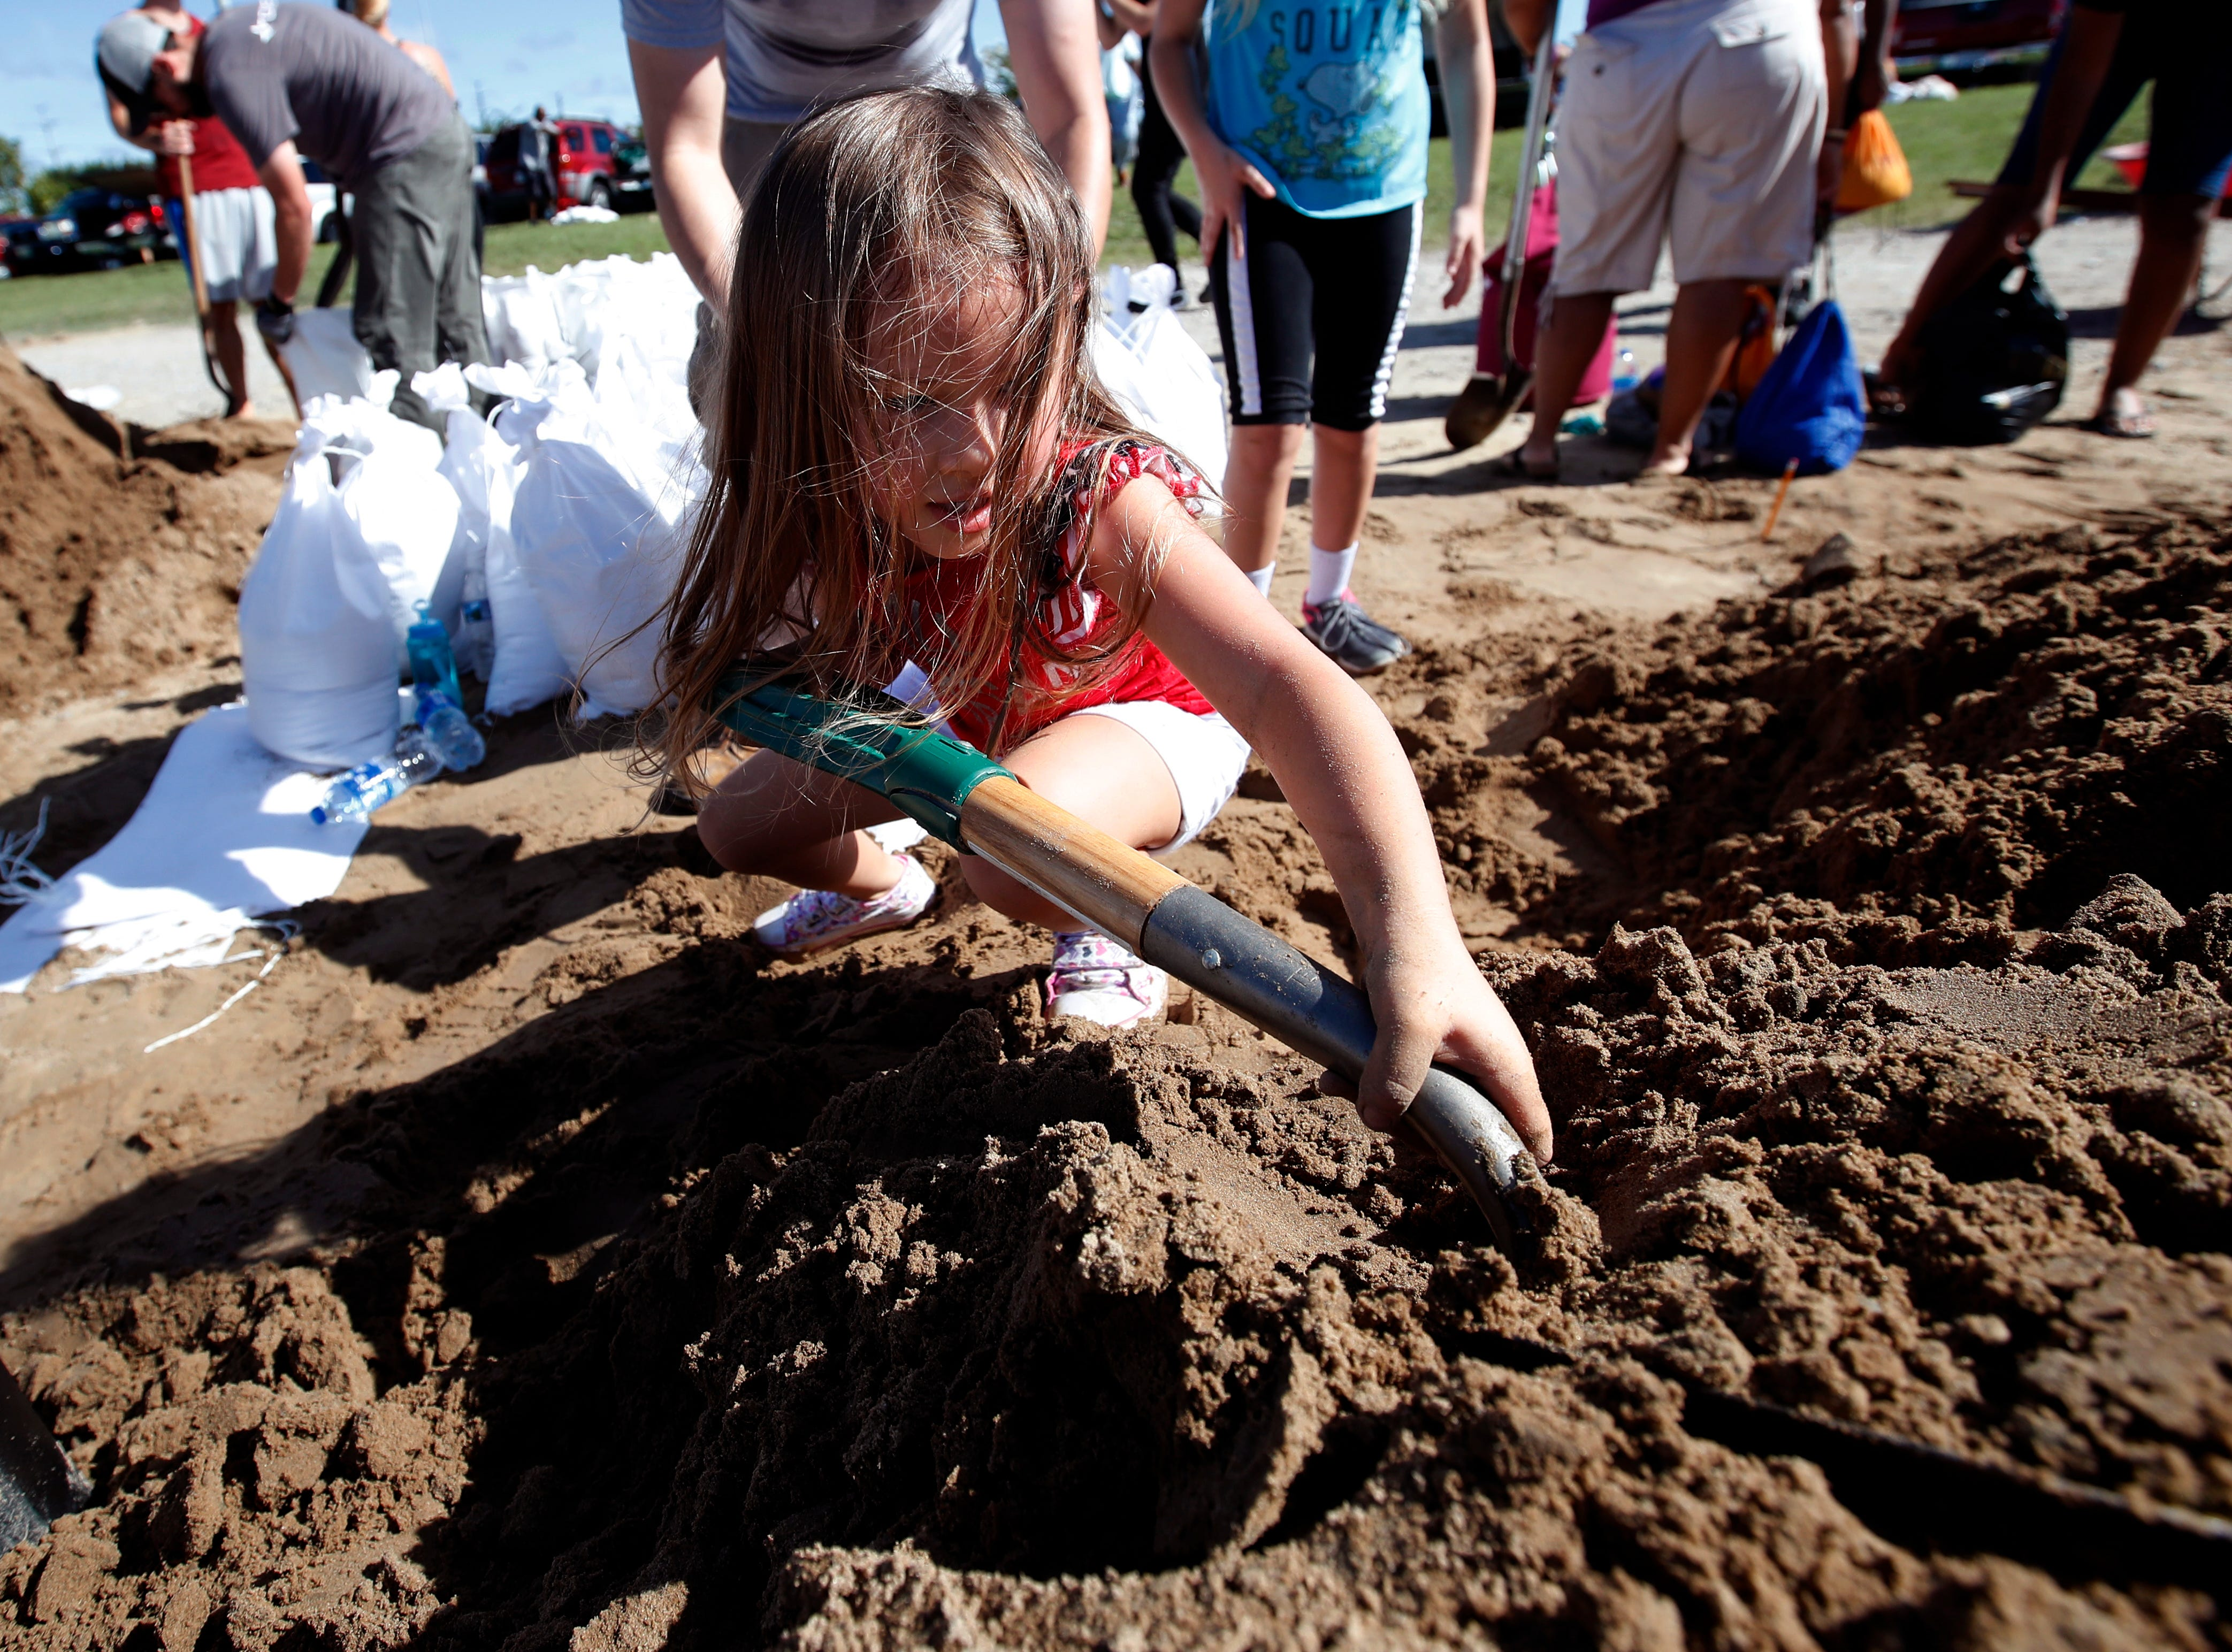 Chloe Heeden, 4, from Virginia Beach, Va., shovels sand to help her dad fill sandbags, Wednesday, Sept. 12, 2018, in Virginia Beach, Va., as Hurricane Florence moves towards the eastern shore. The National Hurricane Center's projected track had Florence hovering off the southern North Carolina coast from Thursday night until landfall Saturday morning or so, about a day later than previously expected. The track also shifted somewhat south and west, throwing Georgia into peril as Florence moves inland.